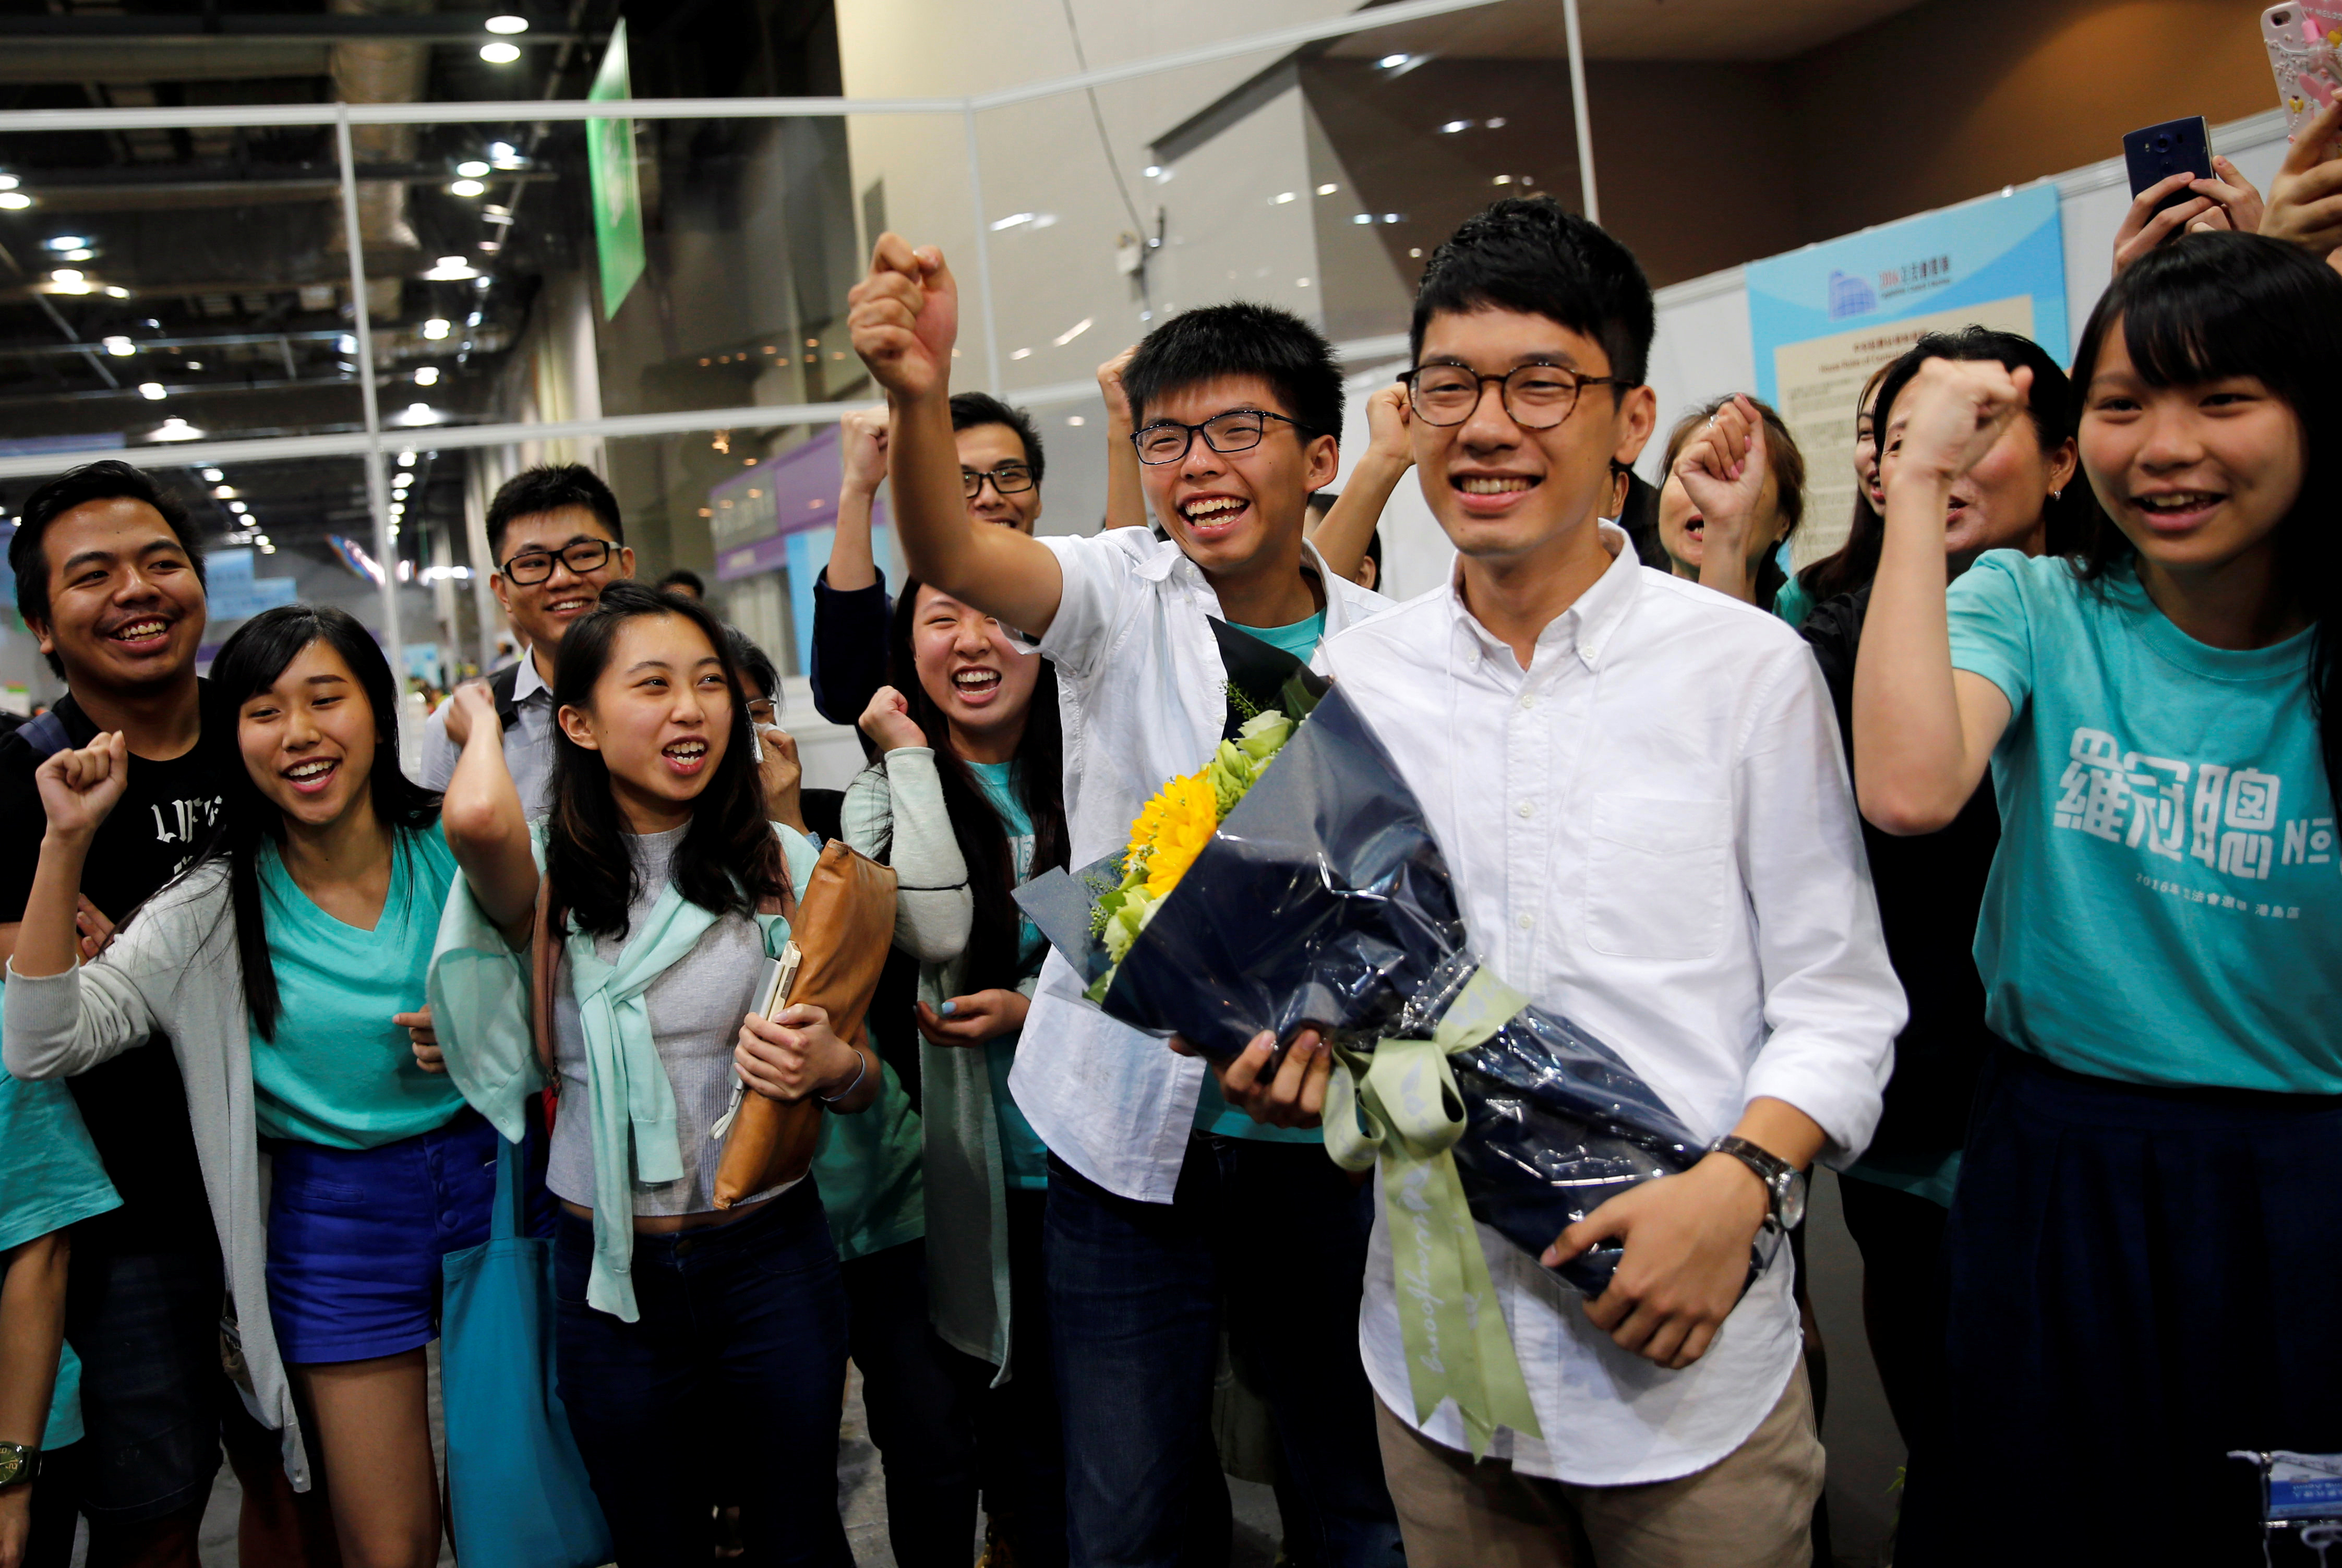 Student leader Joshua Wong, center, greets Demosistō's candidate Nathan Law, second right, as supporters share their joy Sept. 5, 2016, after Law won in the Legislative Council election in Hong Kong